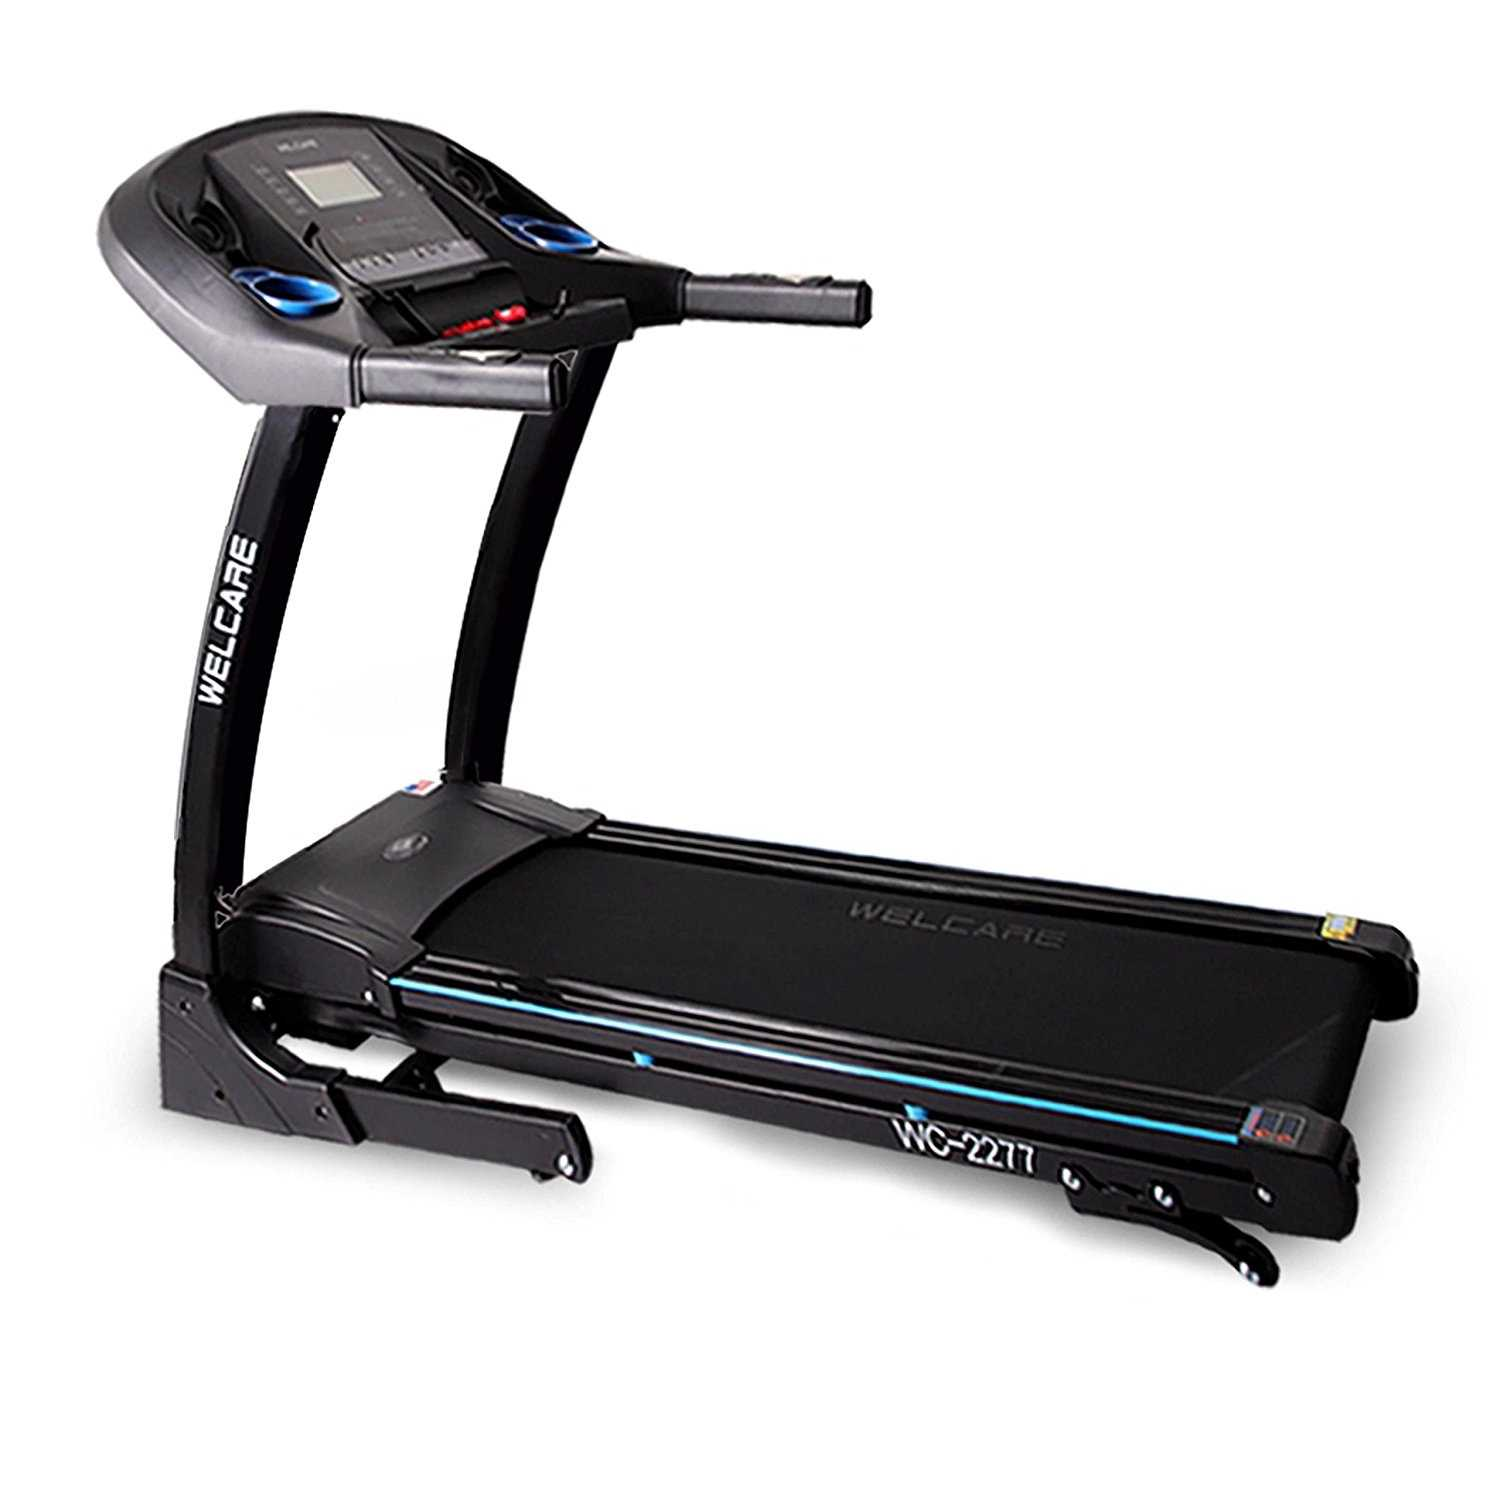 Welcare WC2277 Treadmill